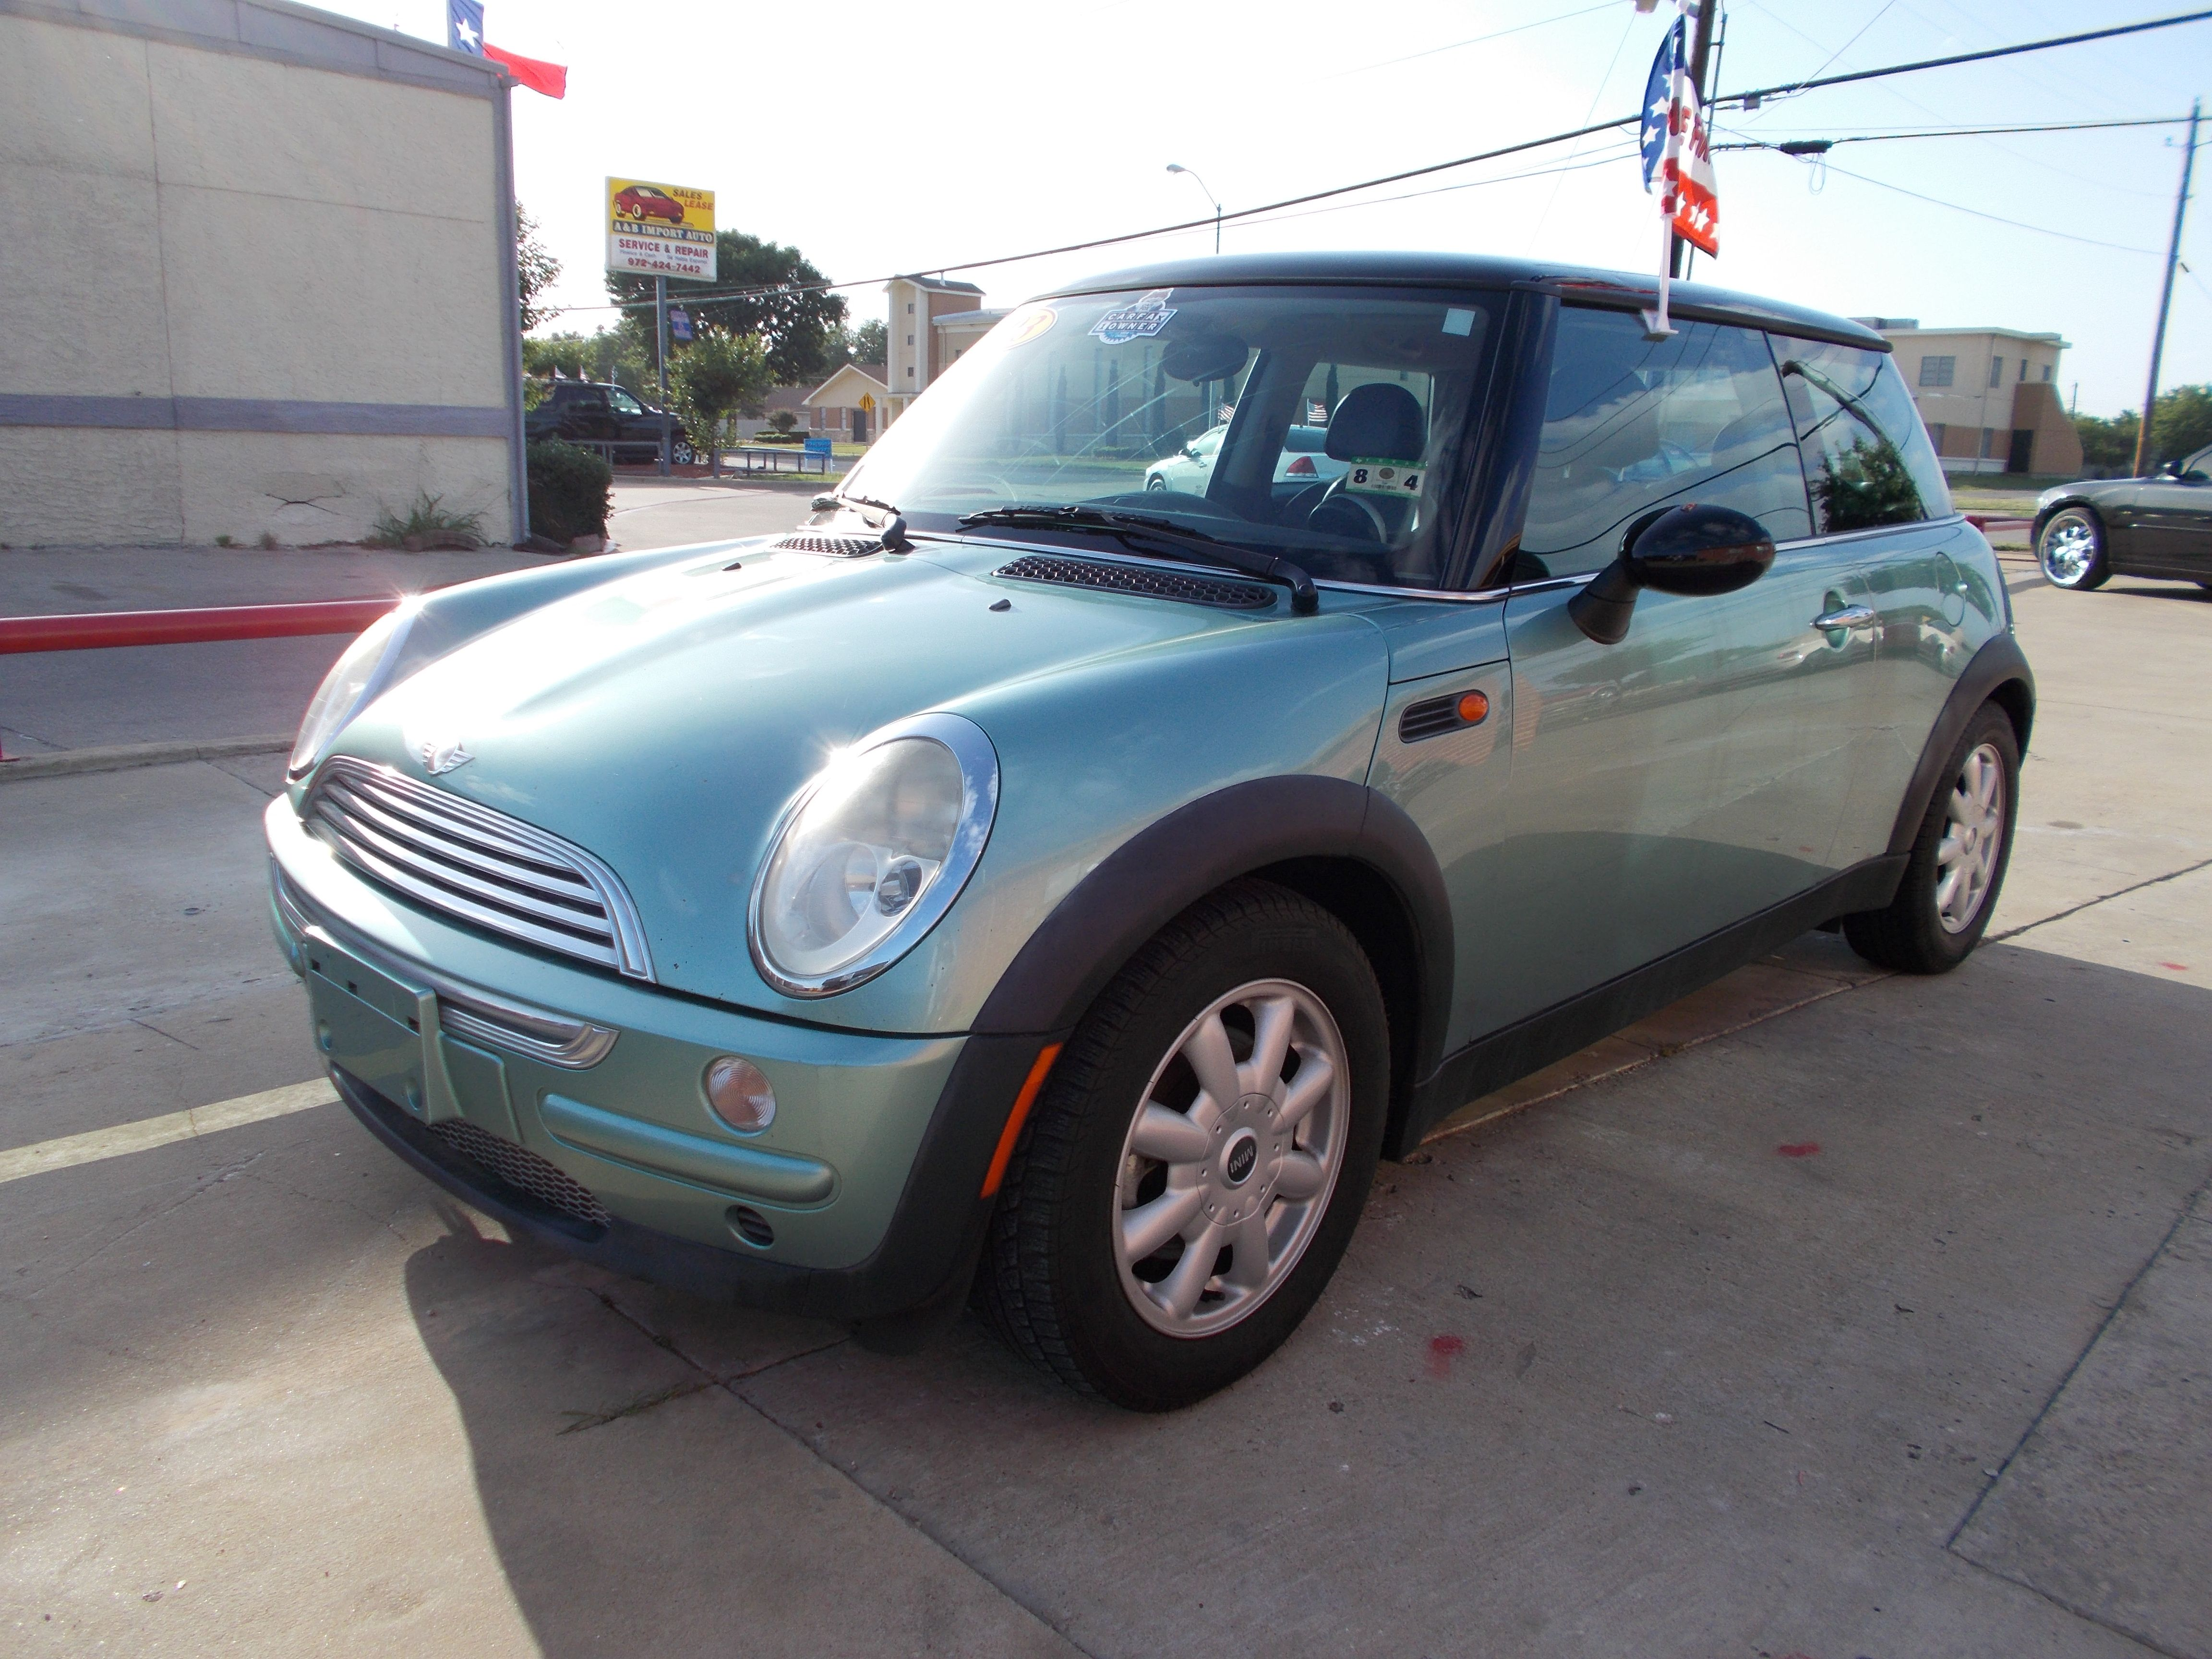 2003 Mini Cooper 1 Owner Carfax Certified Used Car Call Broadway Vehicles At 972 422 4299